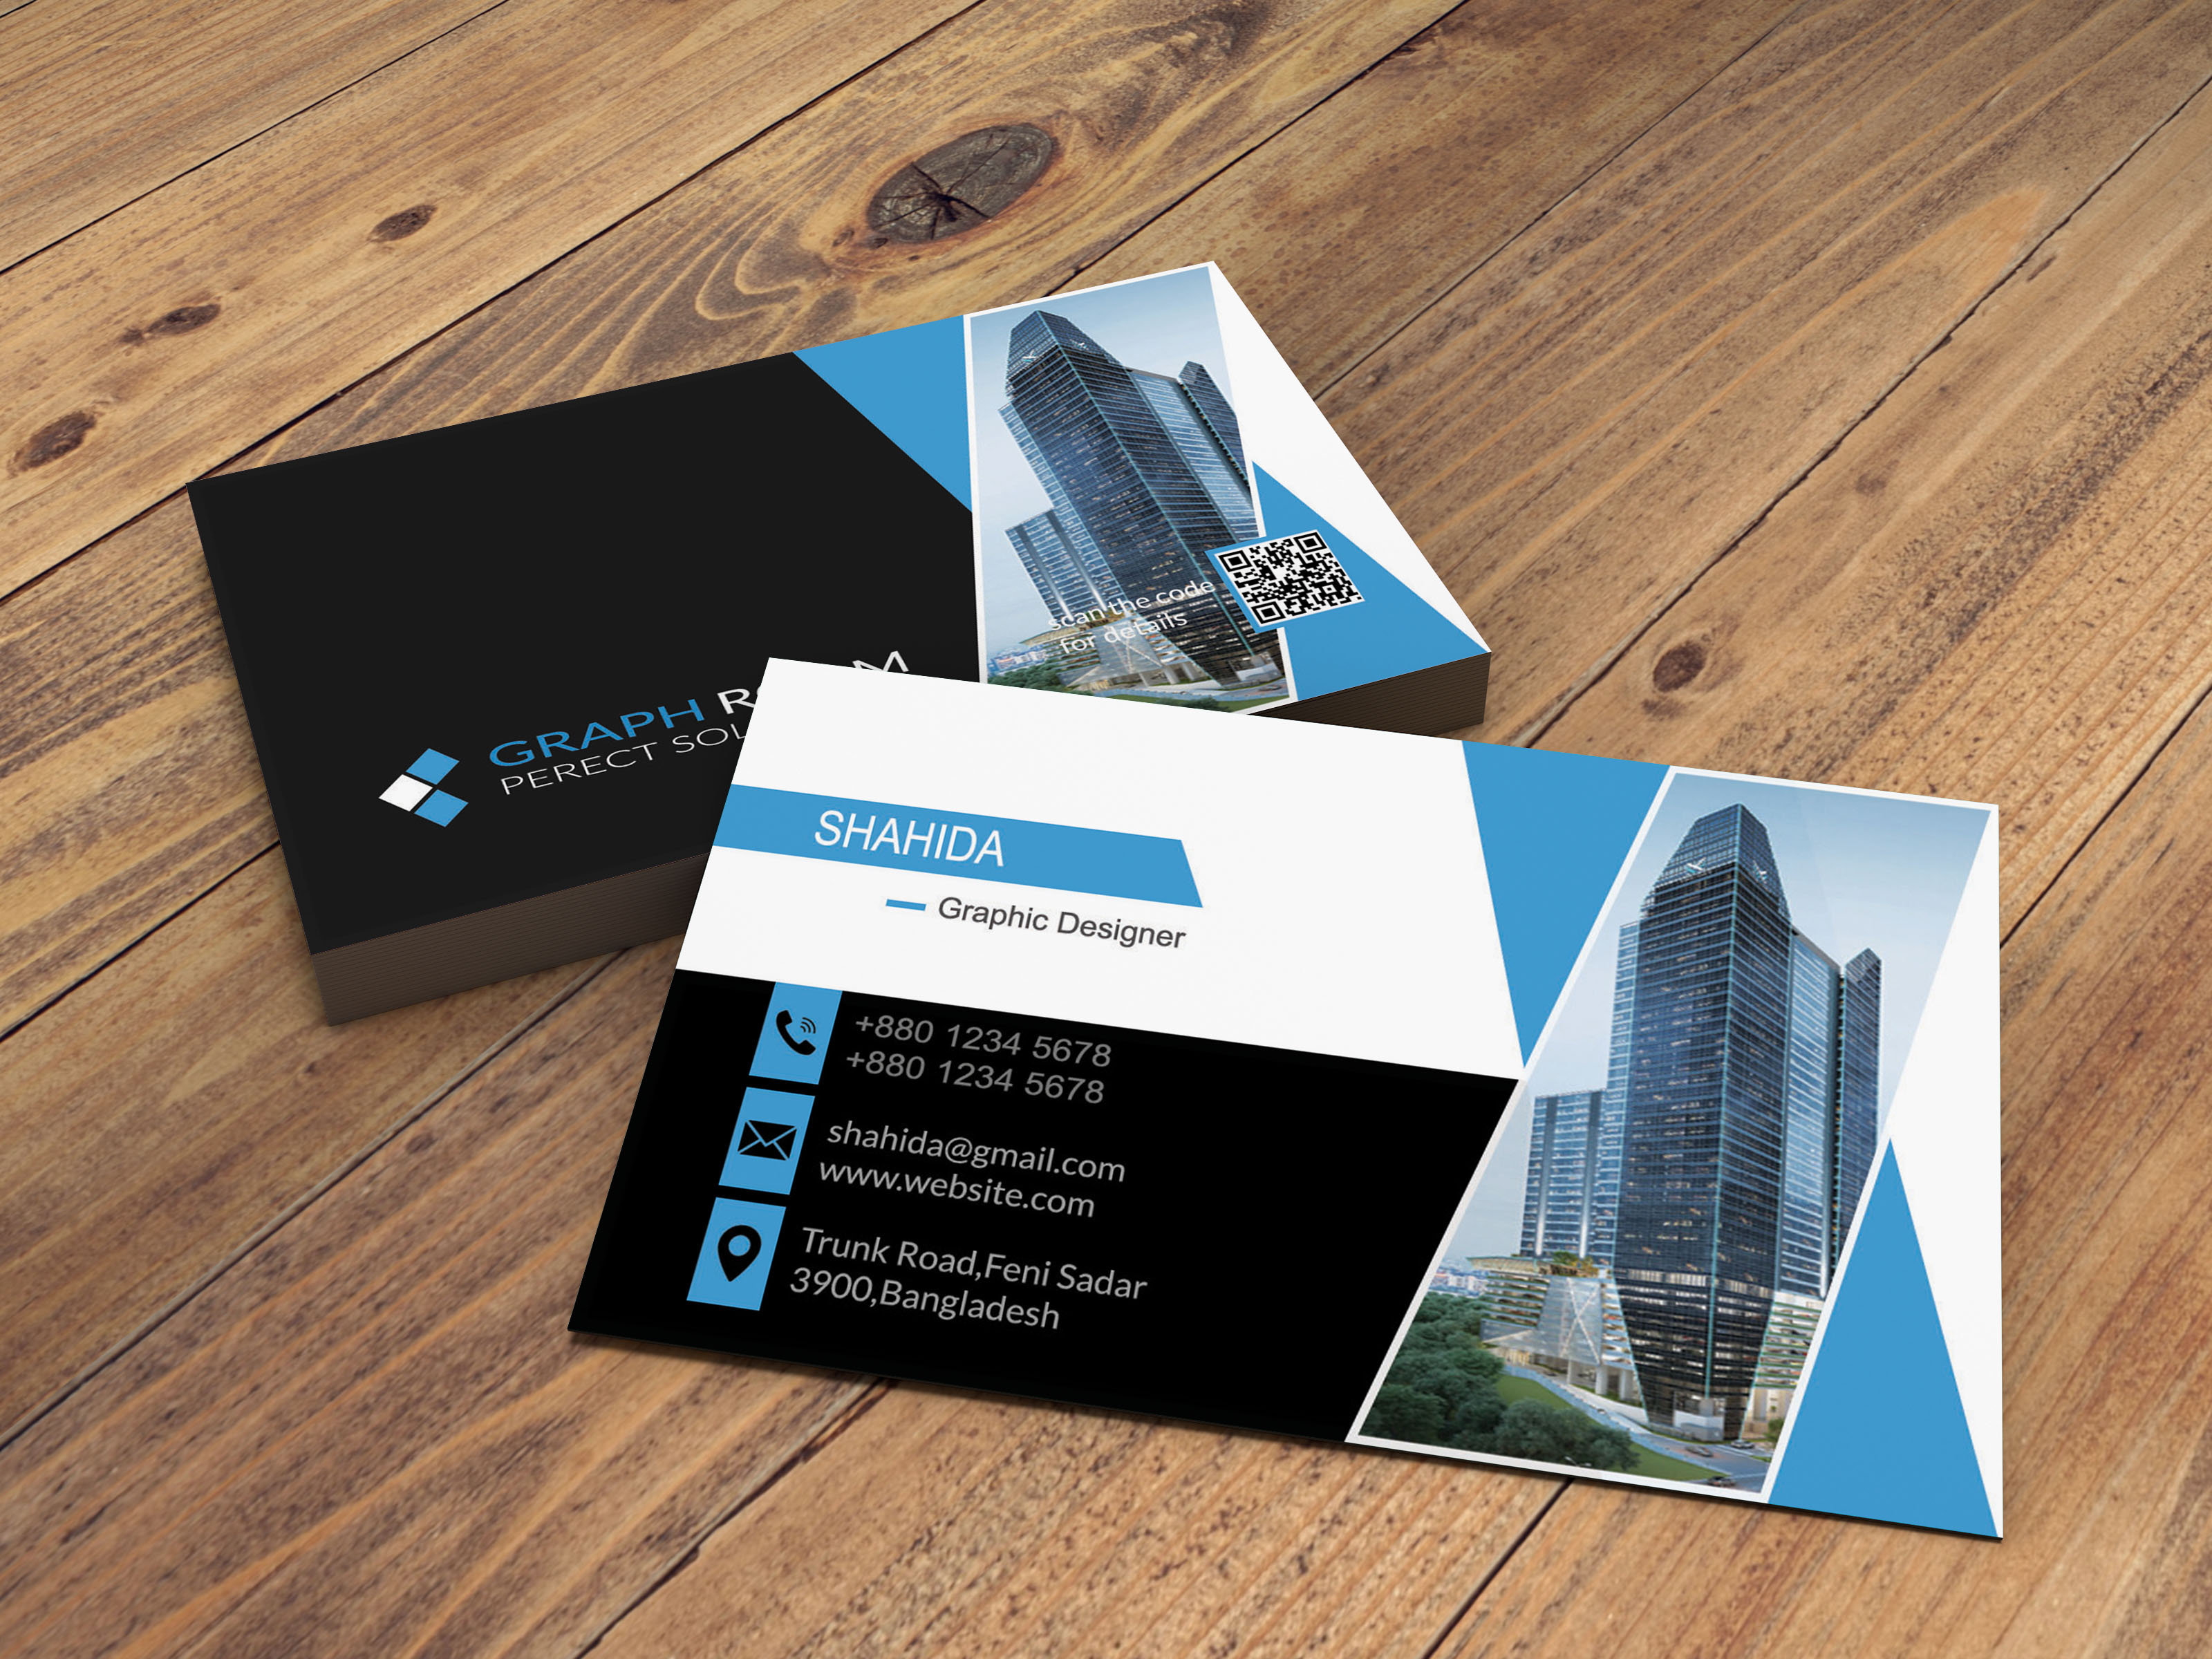 This my business card. thank you for visiting my skill.